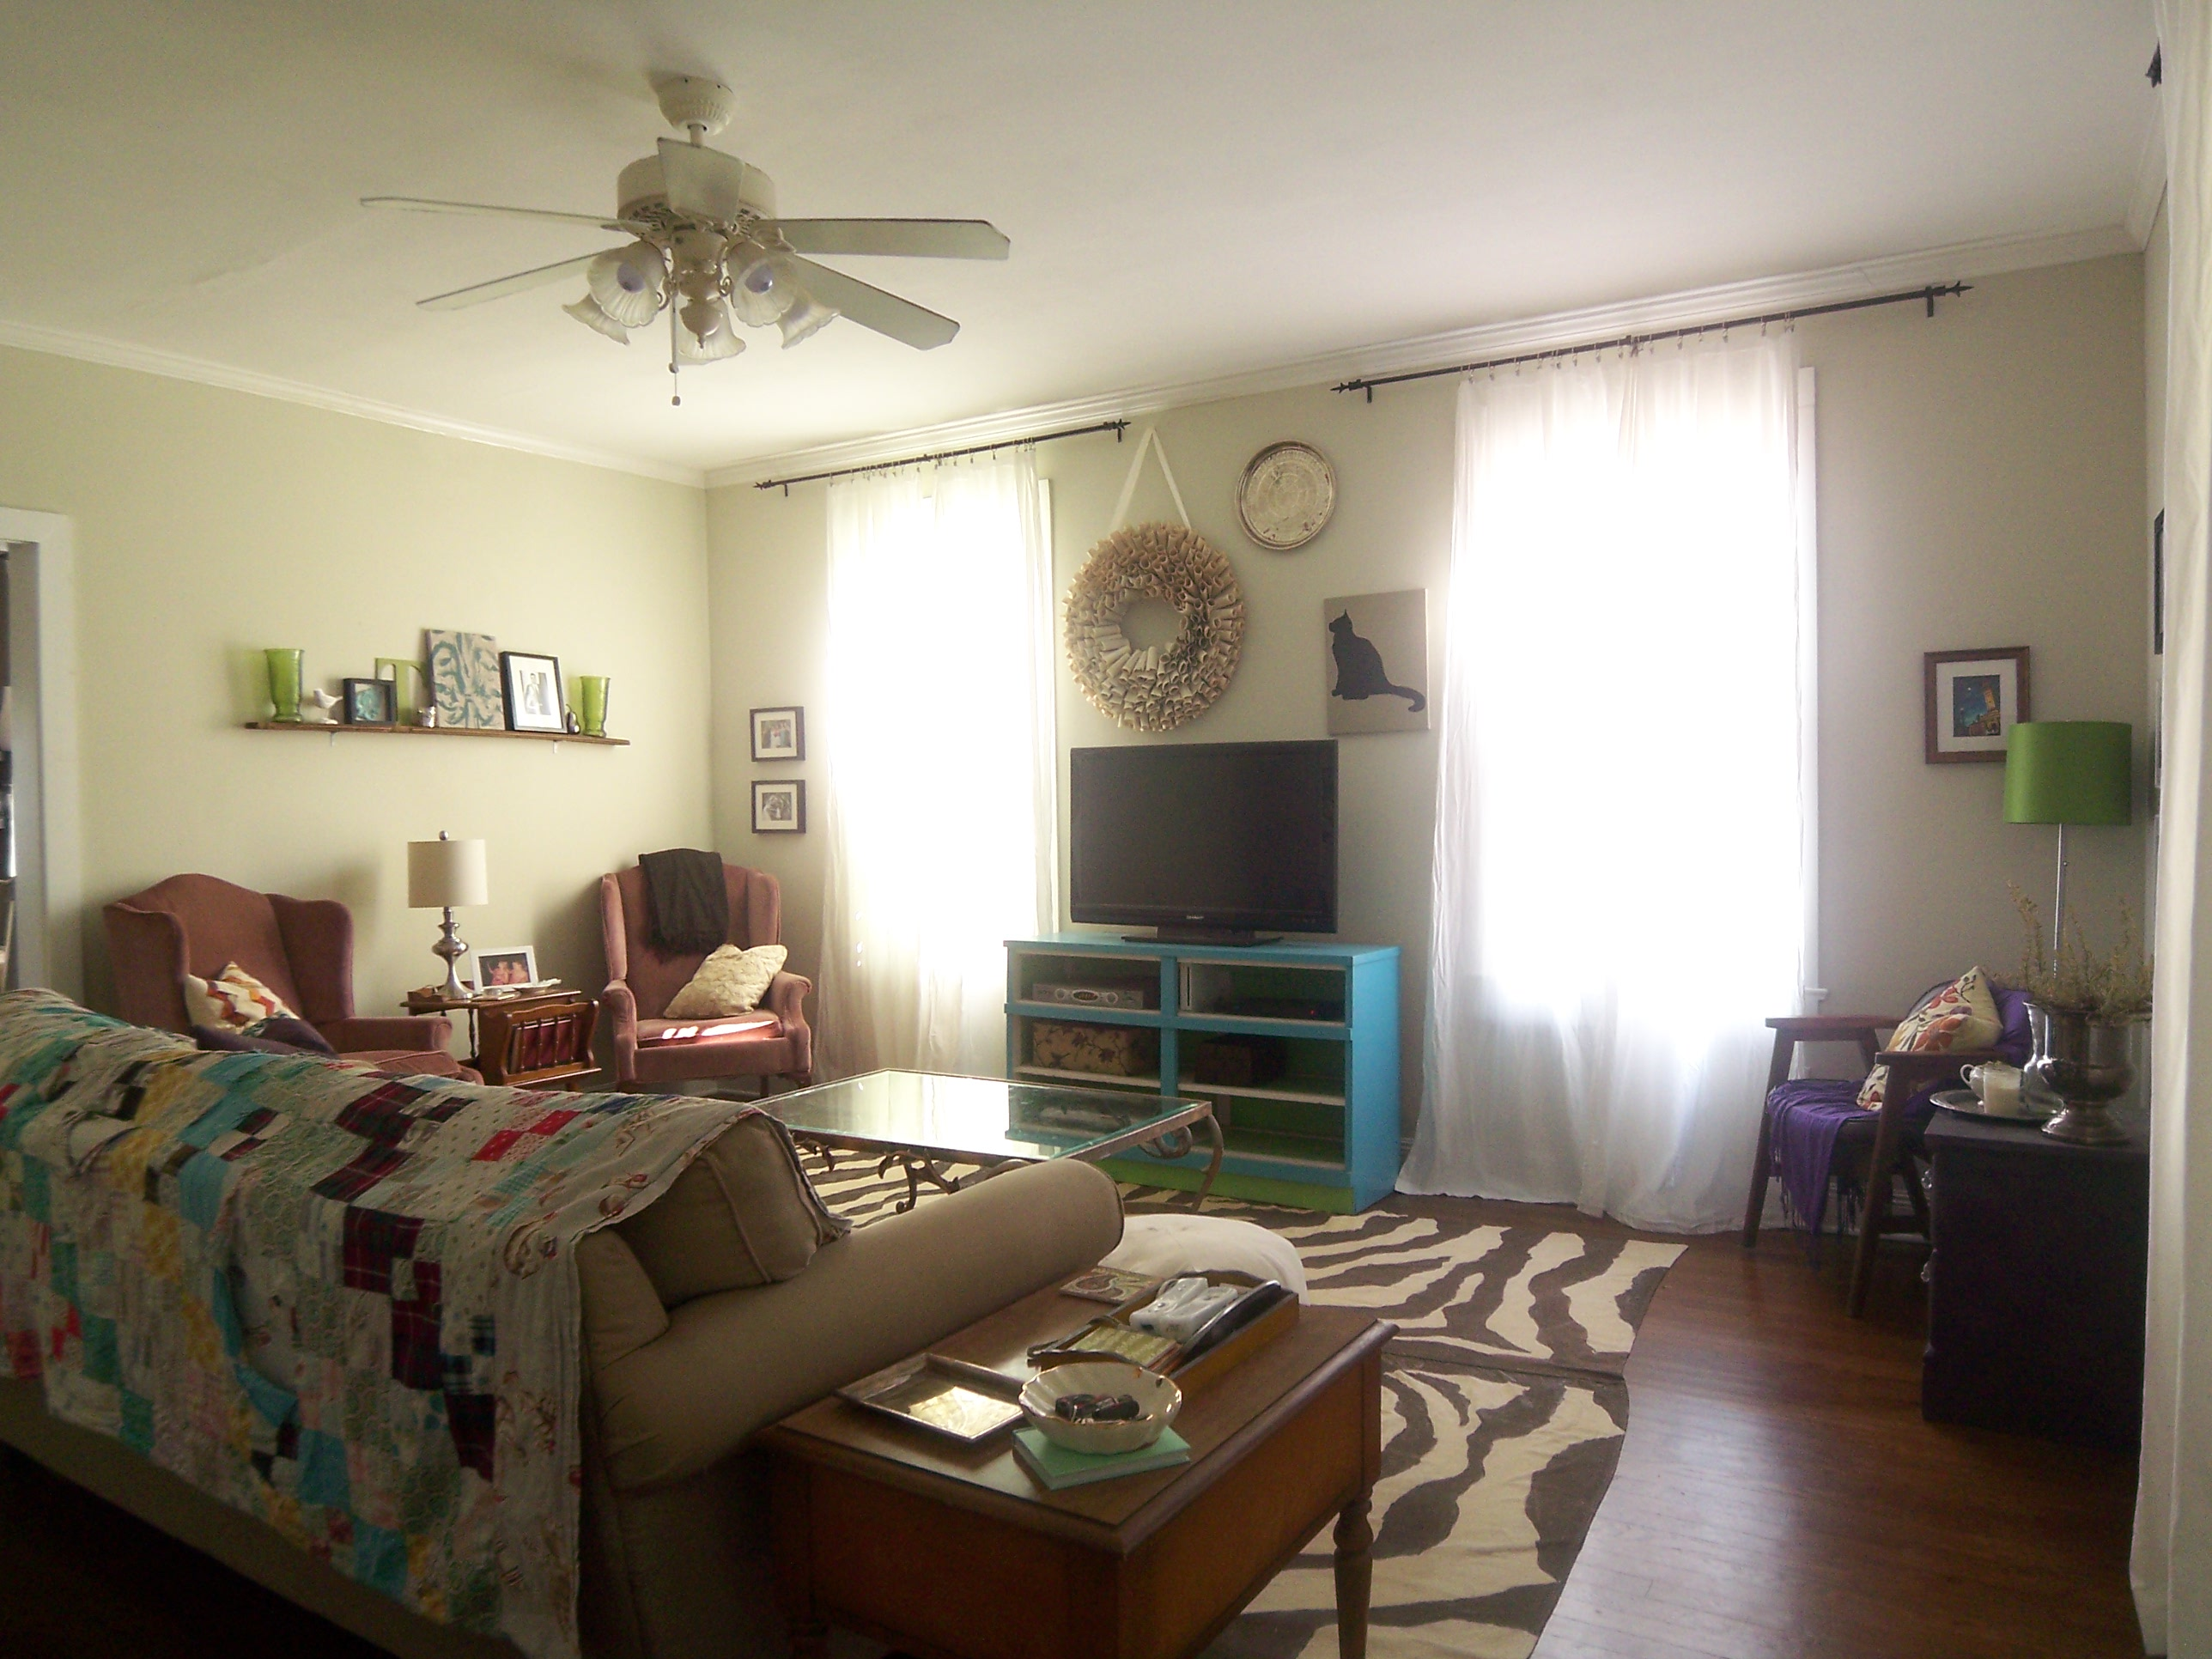 Virtually Rearranging My Living Room | Living Well on the Cheap